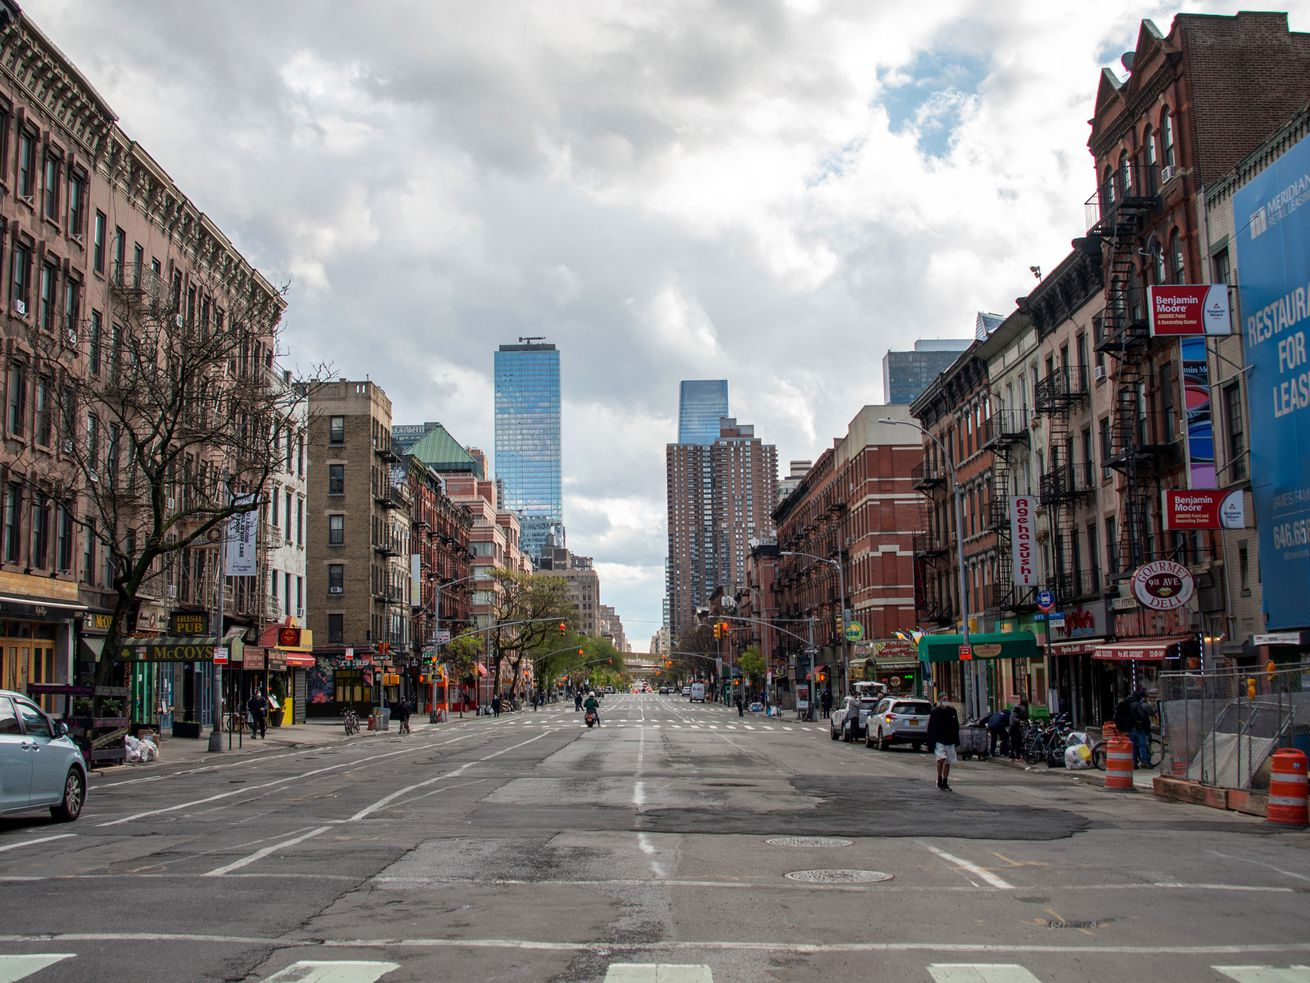 An empty street in New York City shows buildings on either side and a cloudy sky. The image illustrates the state of car buying in New York City during the coronavirus pandemic.